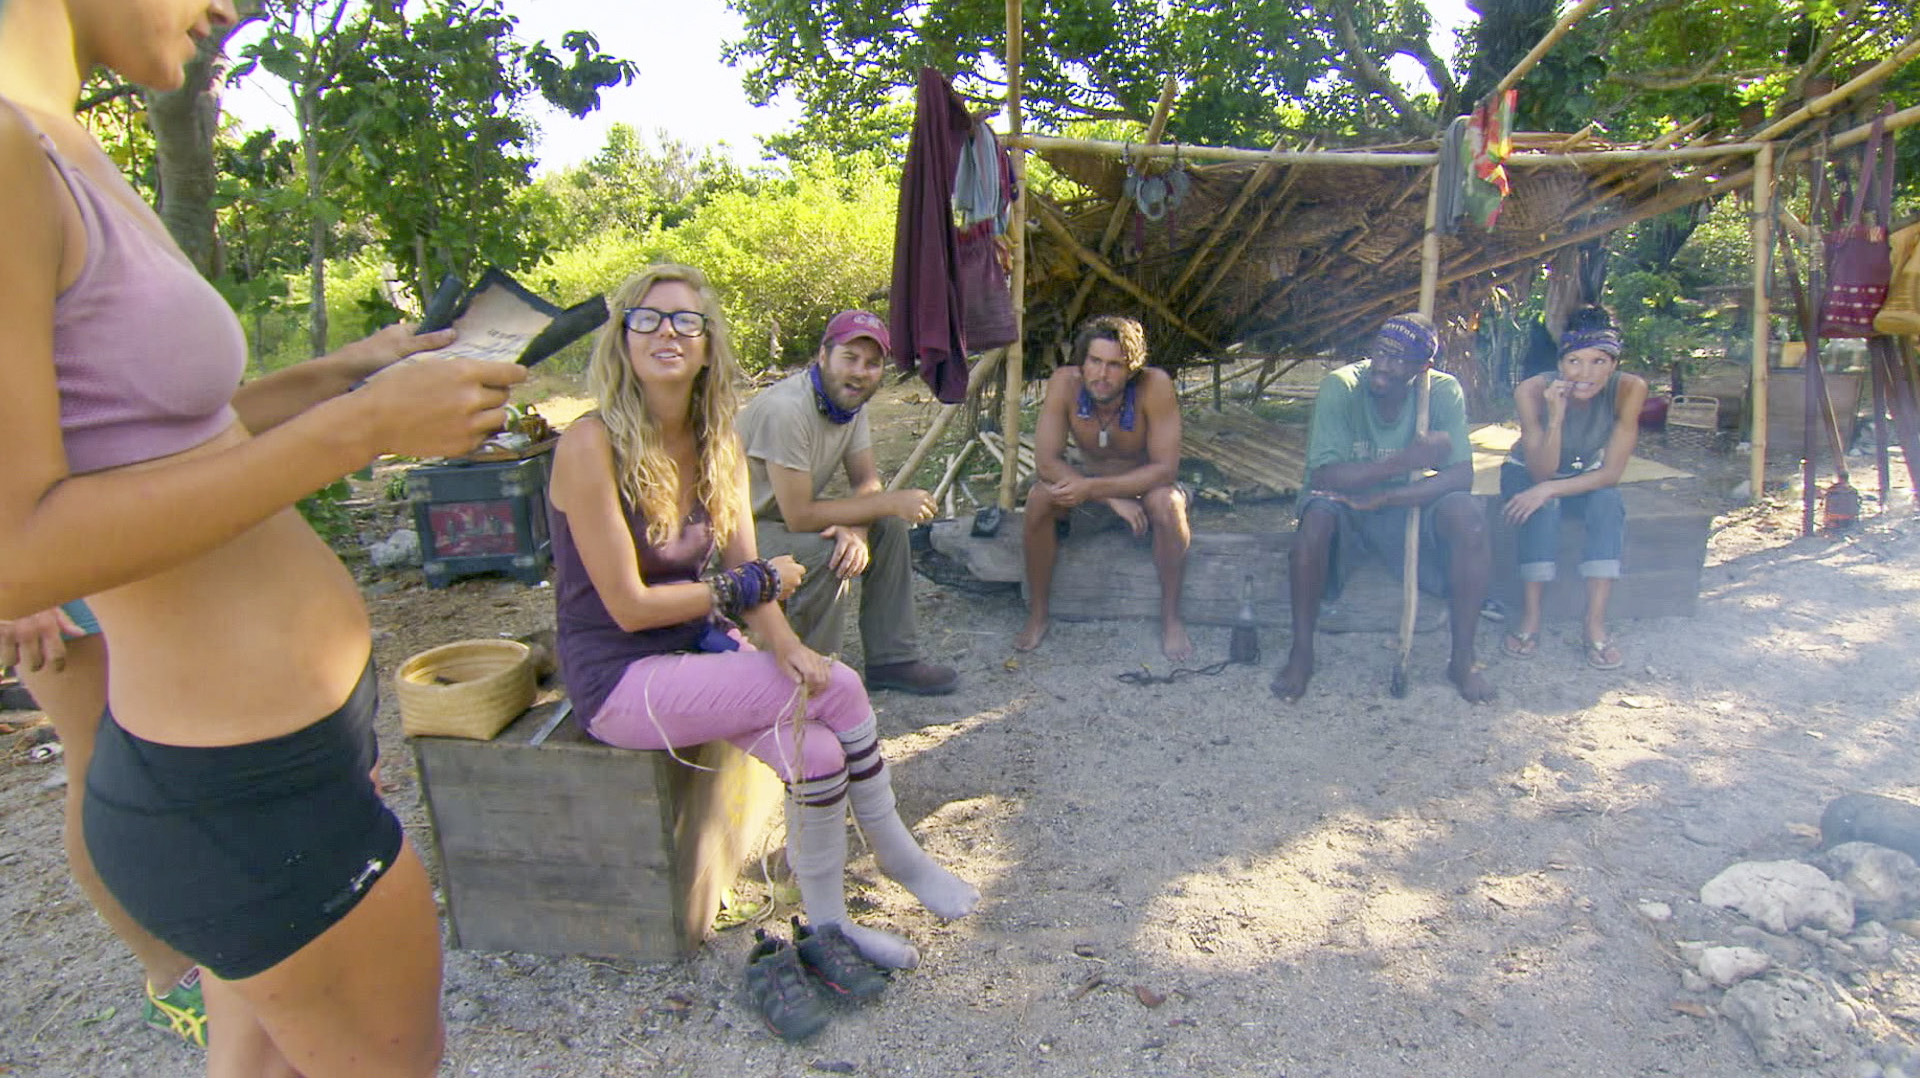 Hanging out at camp in Season 27 Episode 11